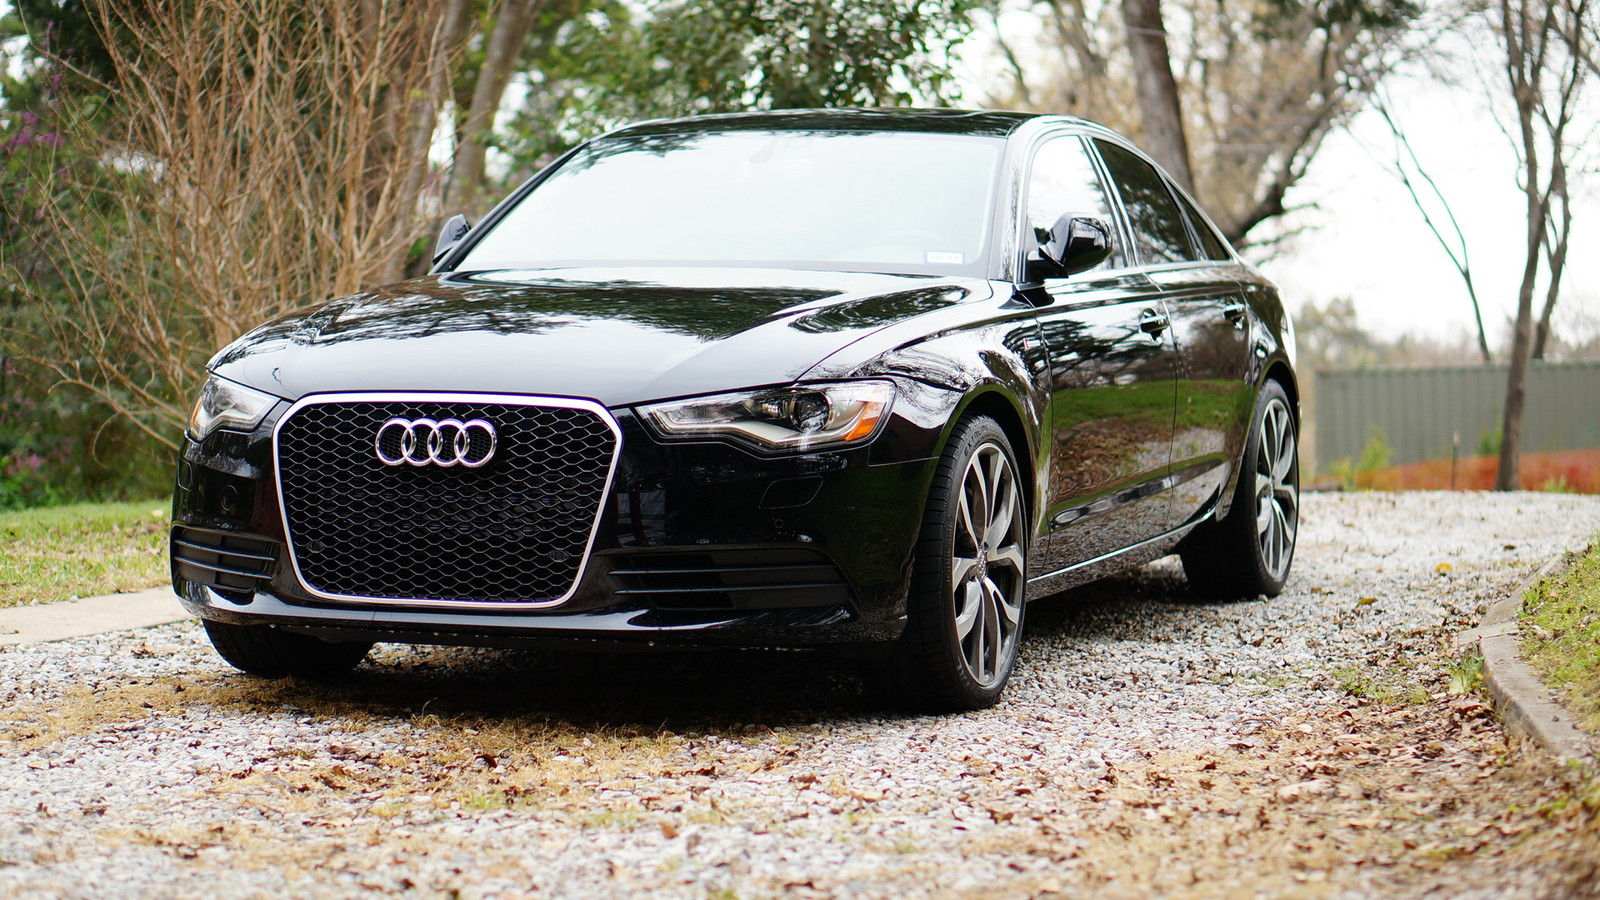 Brilliant Black 2013 Audi A6 3.0TFSI